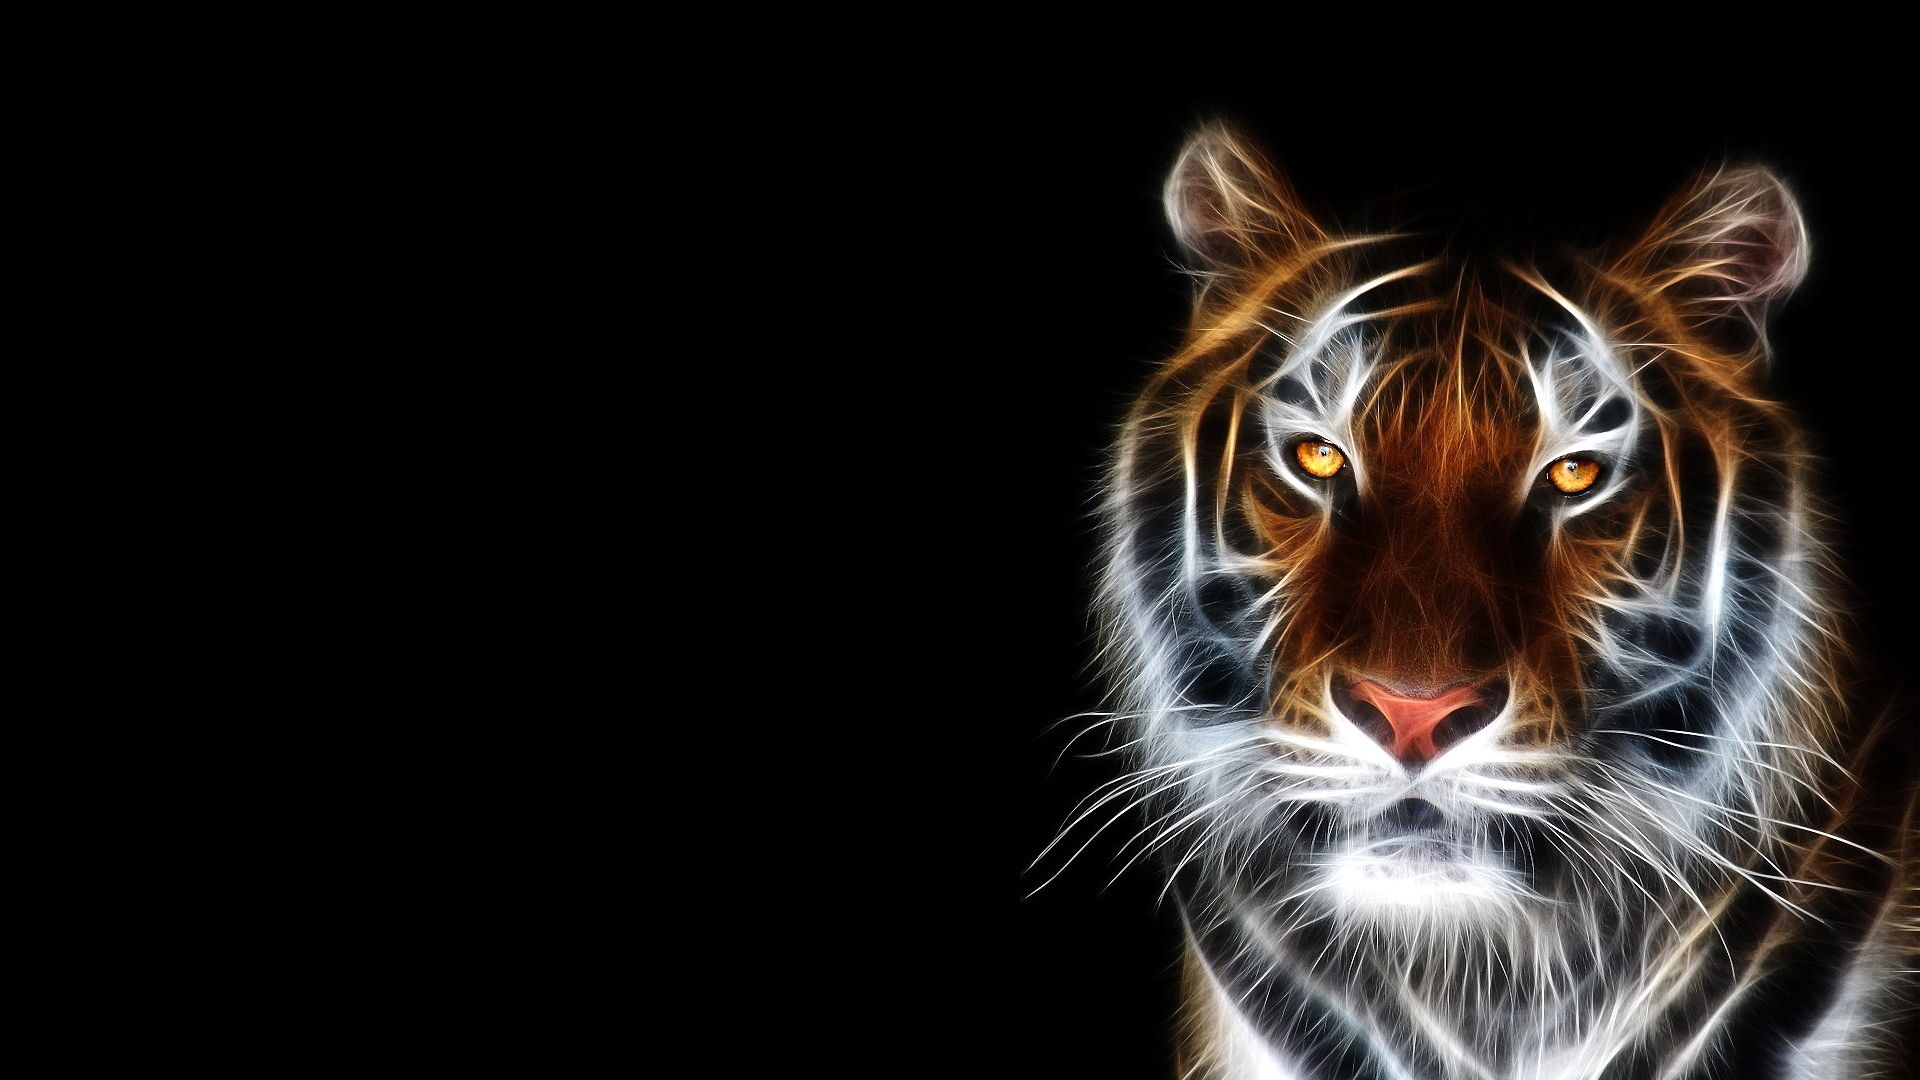 Download Free Wallpaper Gallery 1920 1080 1920 1080 Wallpapers Free Download 41 Wallpapers Adorable Wallpapers Big Cats Art Animals Beautiful Animals